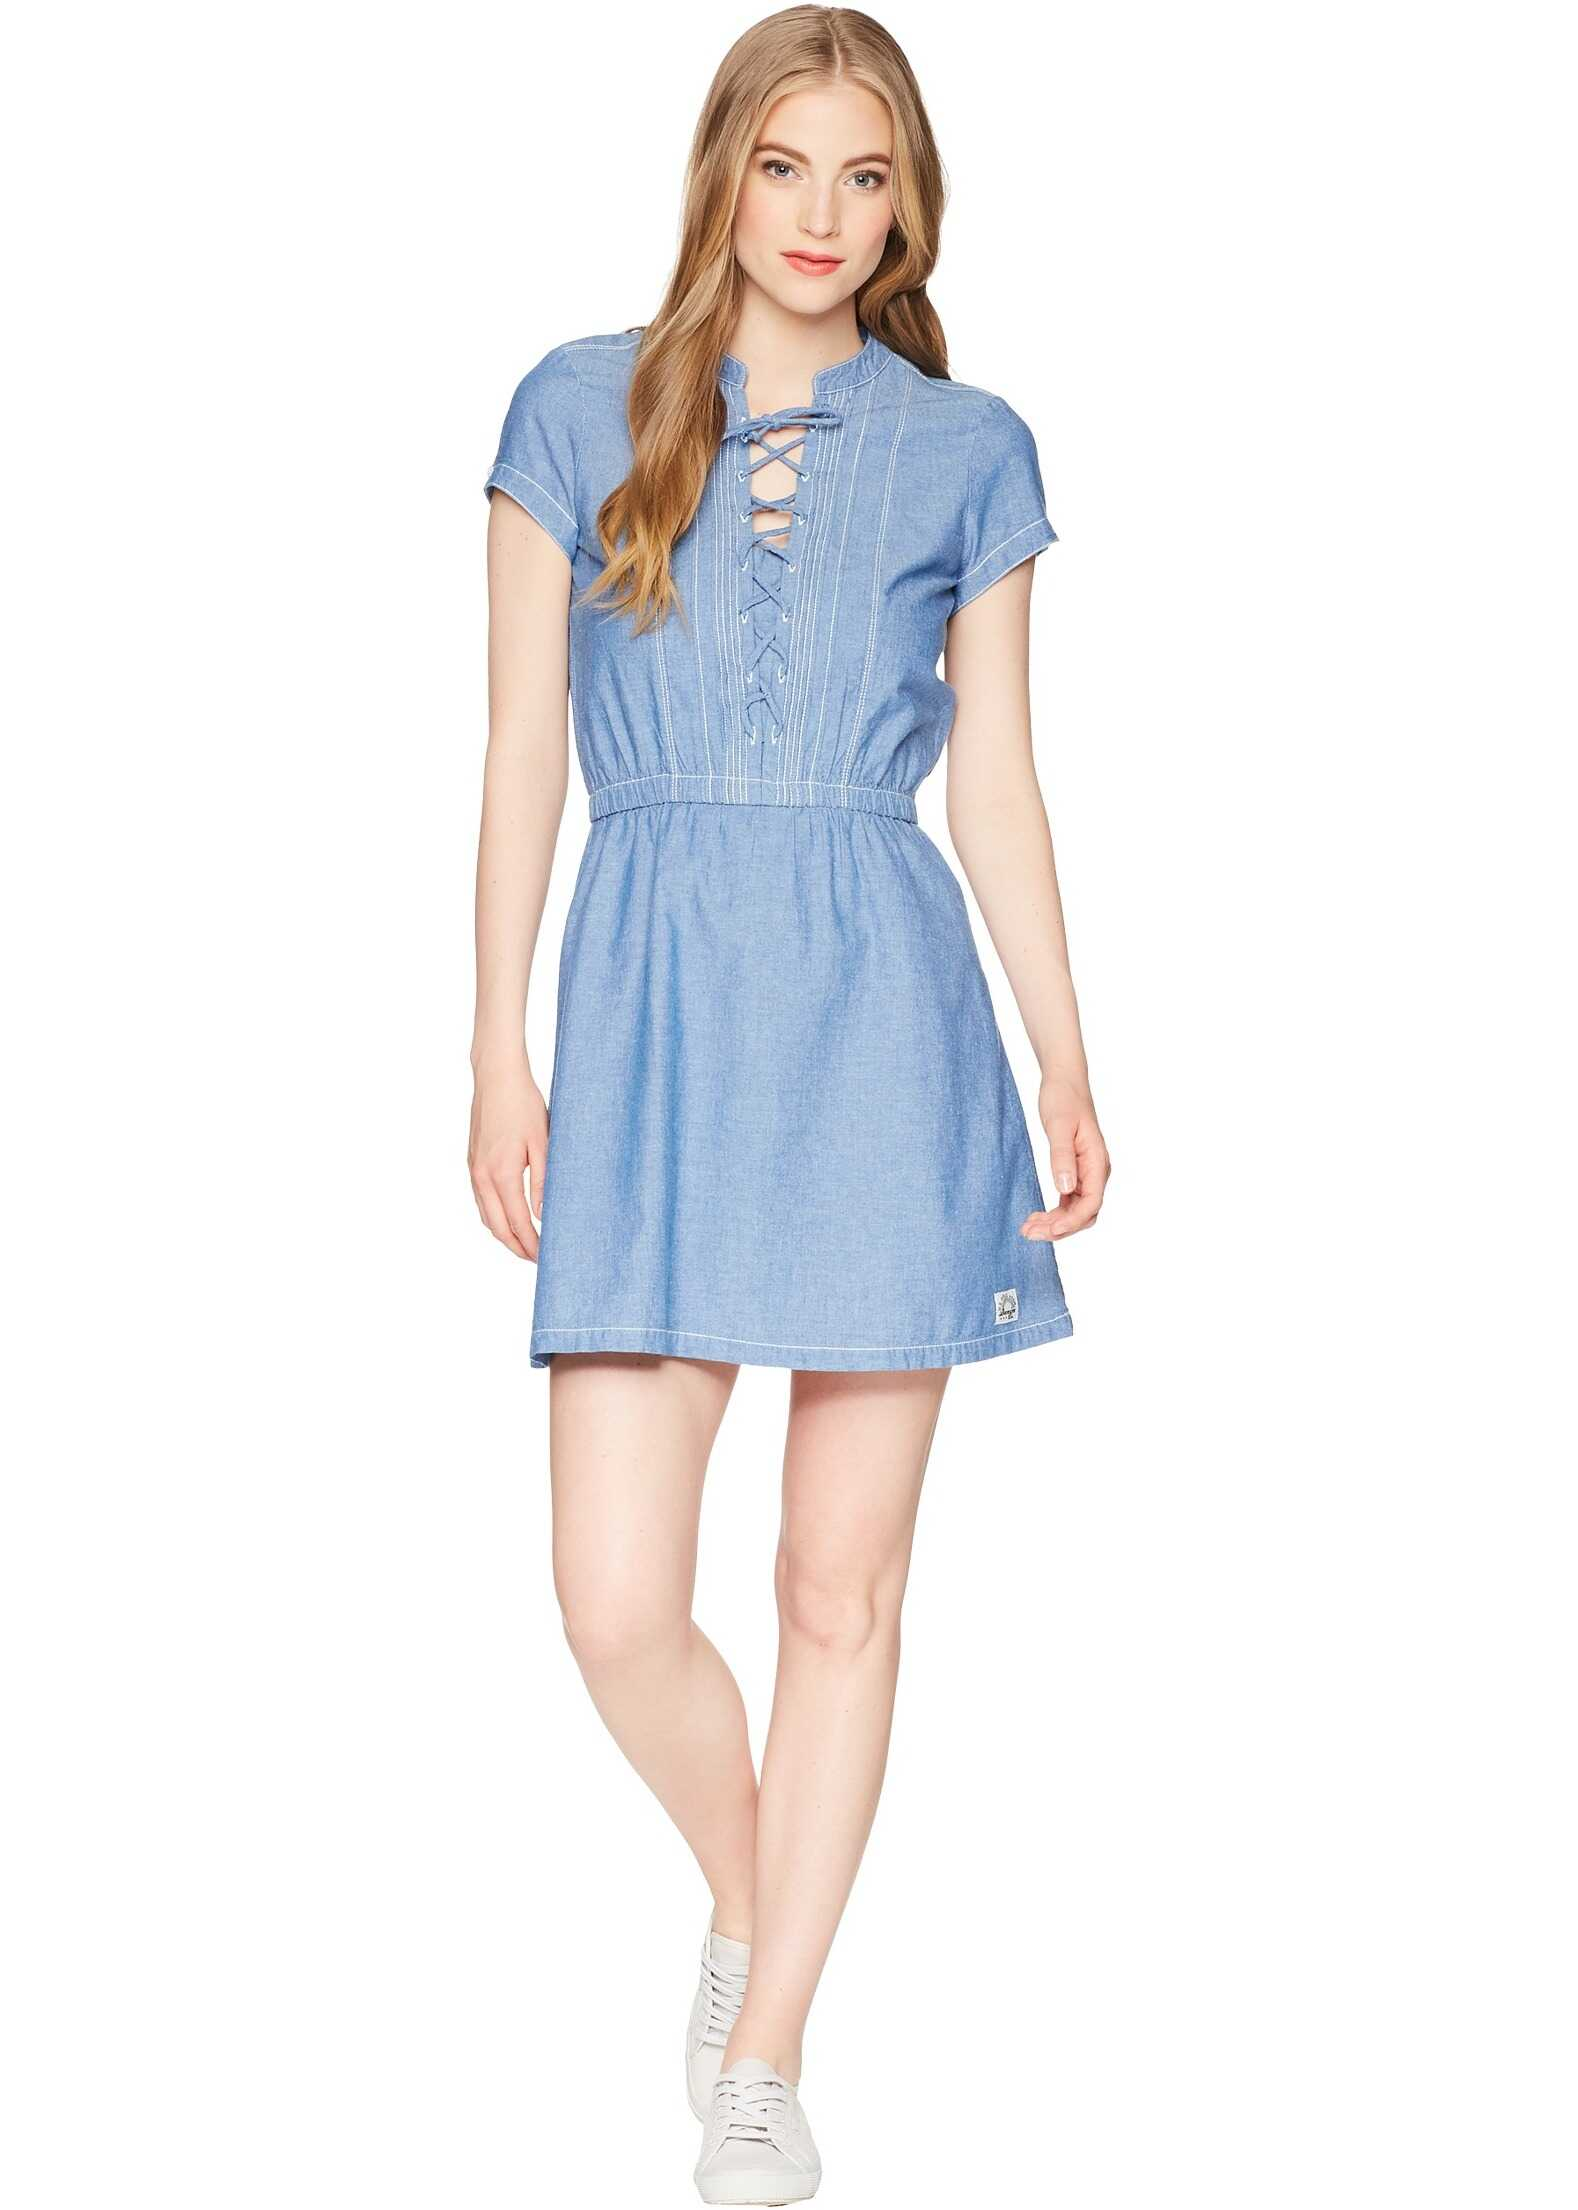 U.S. POLO ASSN. Cross and Pleat Chambray Dress Blue Chambray